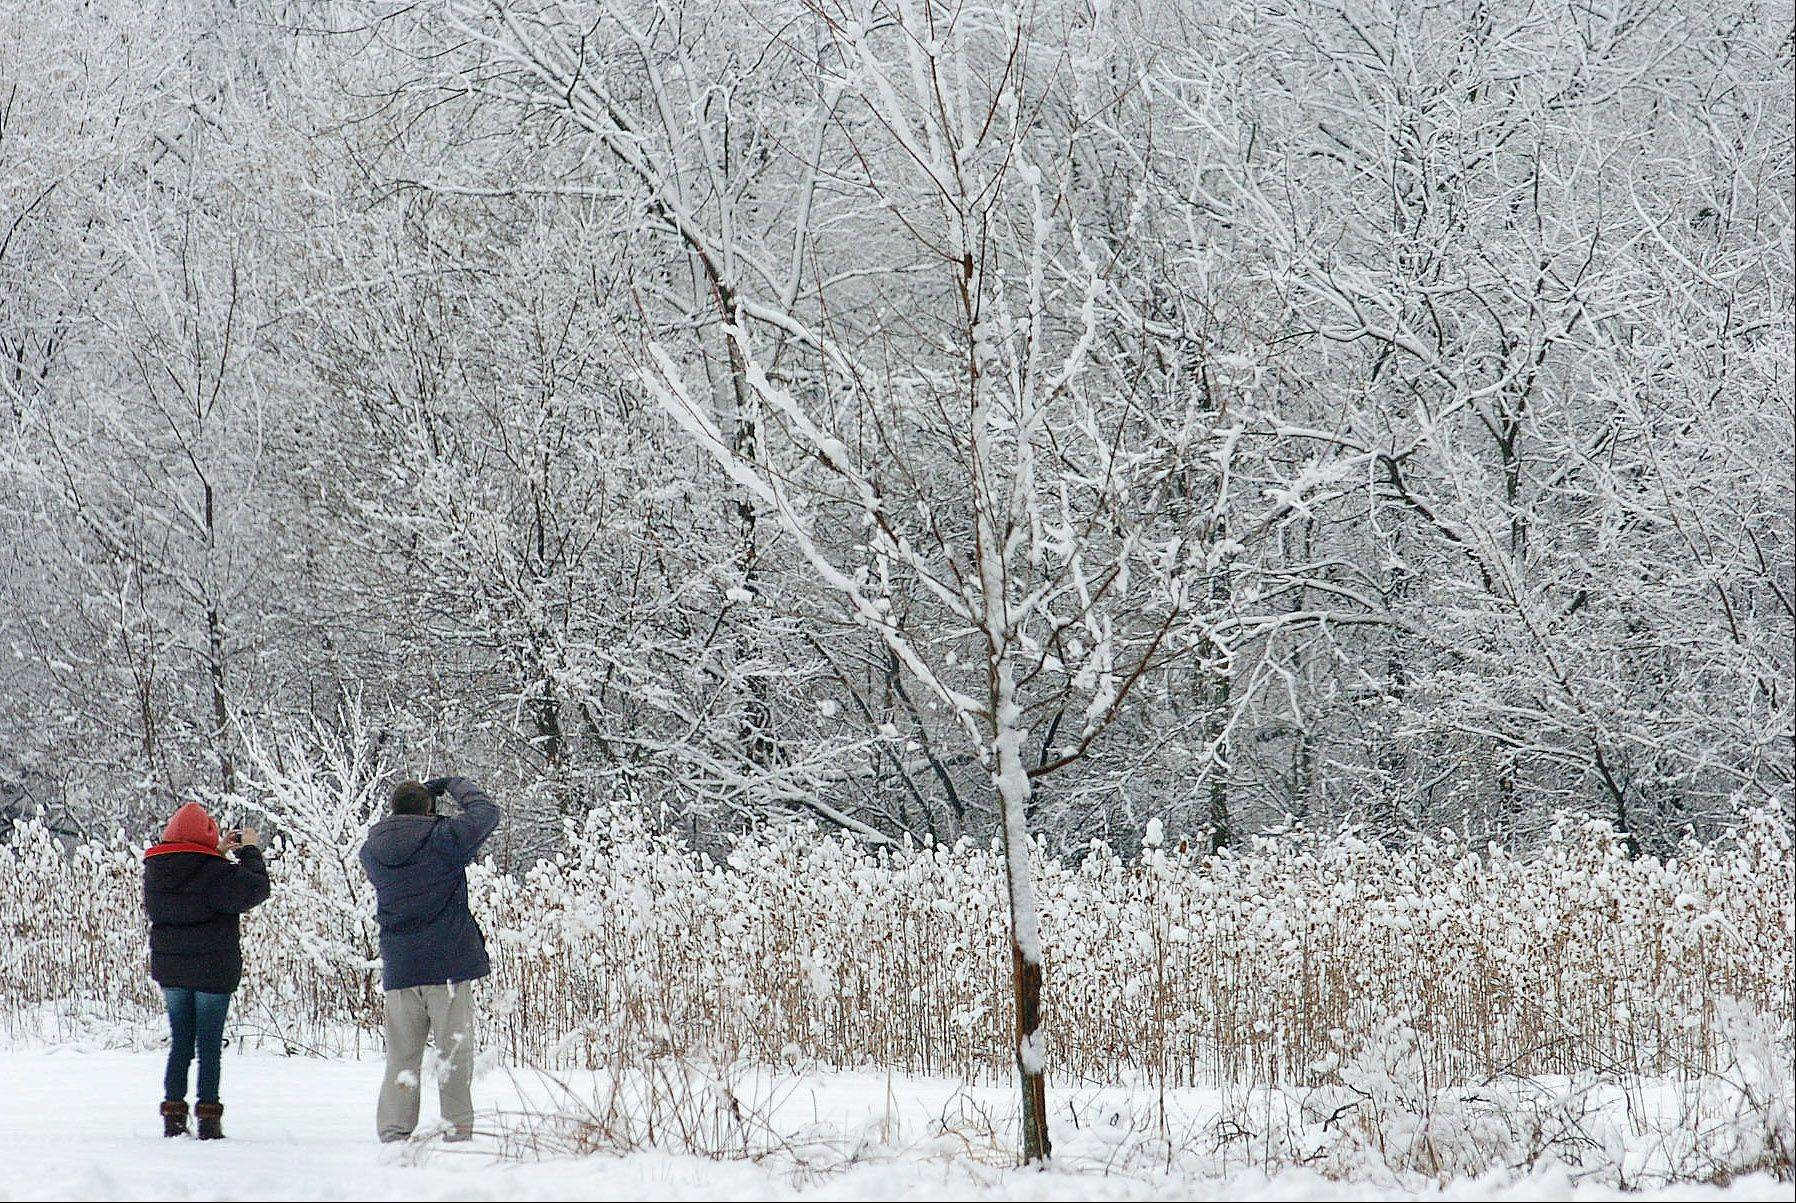 A couple stops to photograph some trees Friday in Busse Woods, as amateur photographers were out in droves photographing the picturesque snow formations after the overnight snowfall.